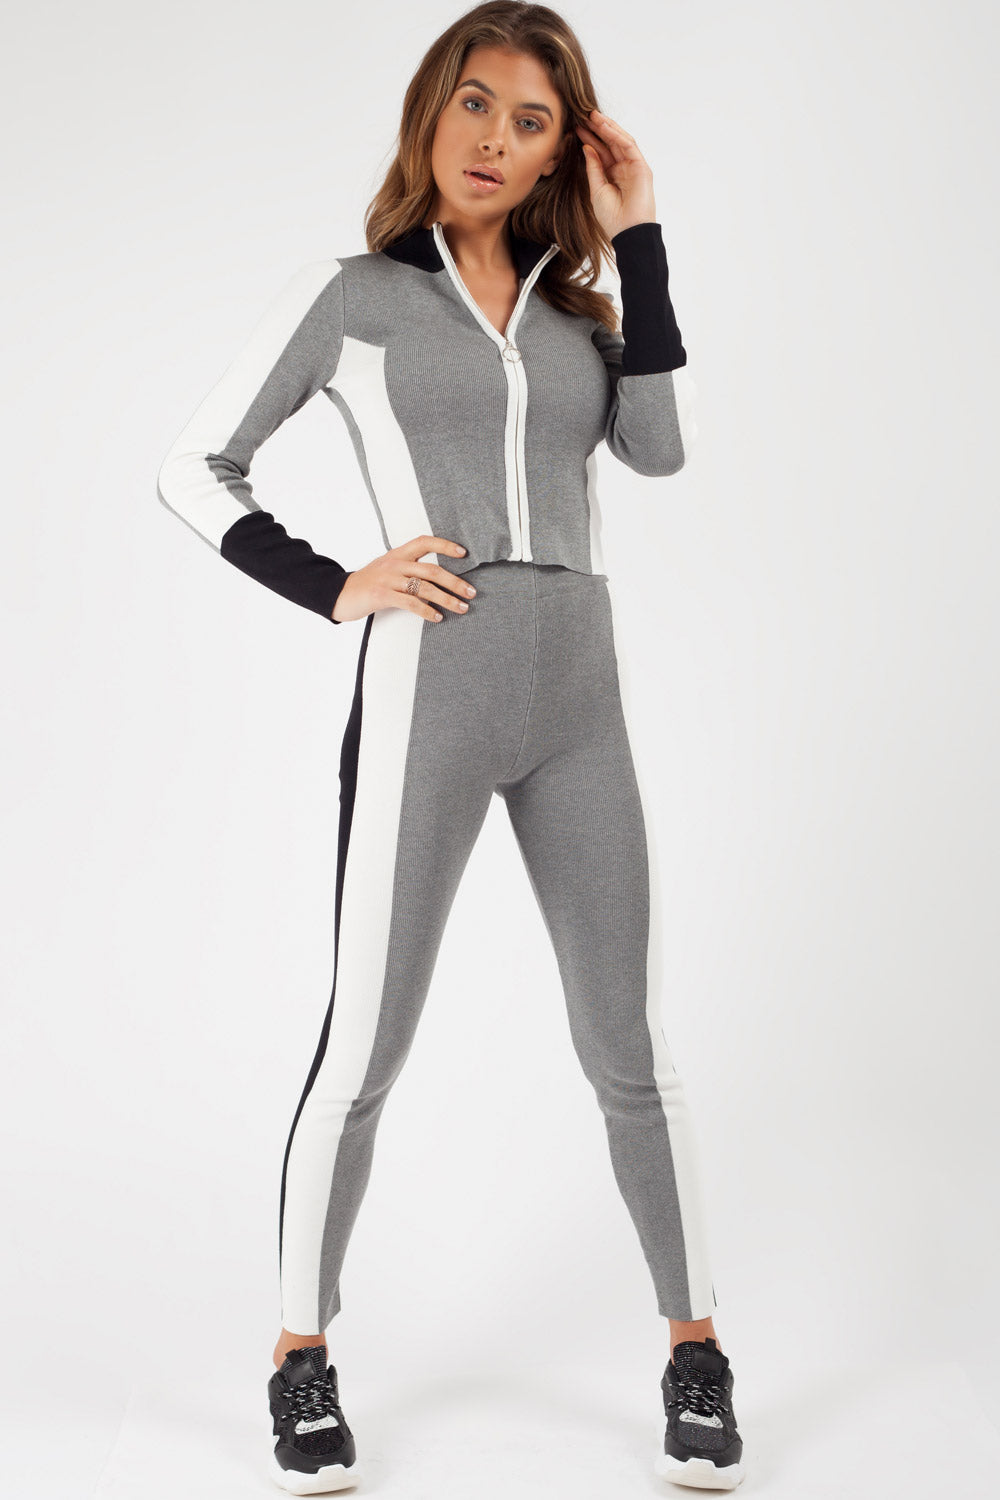 grey zip front tracksuit gym wear womens